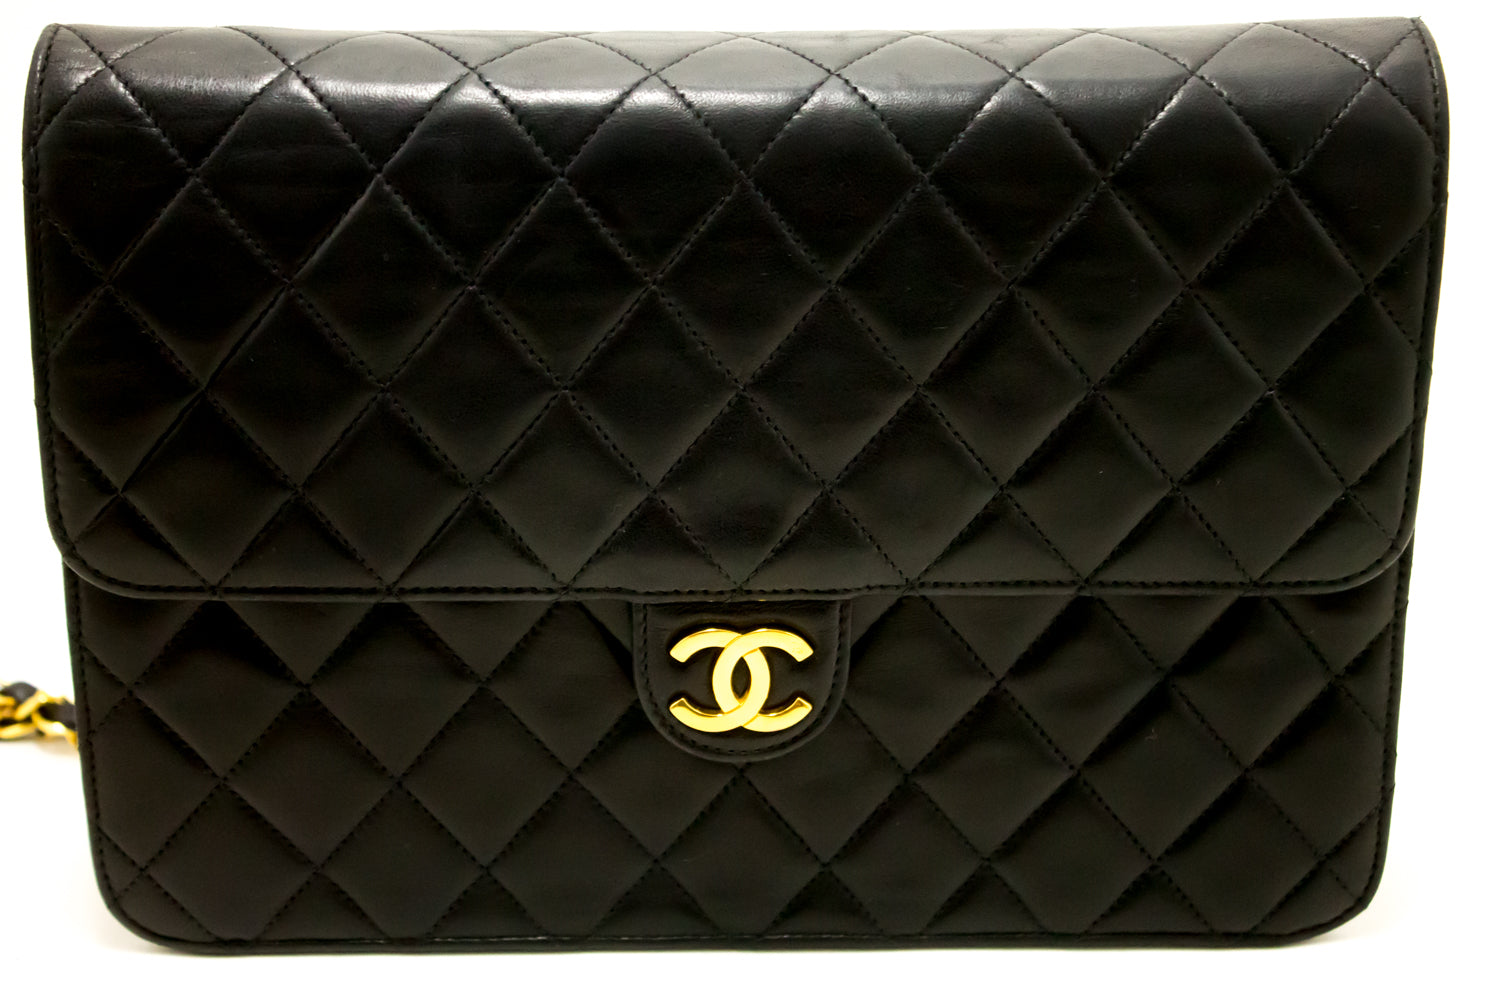 6b8c2e23bf9461 ... CHANEL Chain Shoulder Bag Clutch Black Quilted Flap Lambskin L32-Chanel-hannari-shop  ...